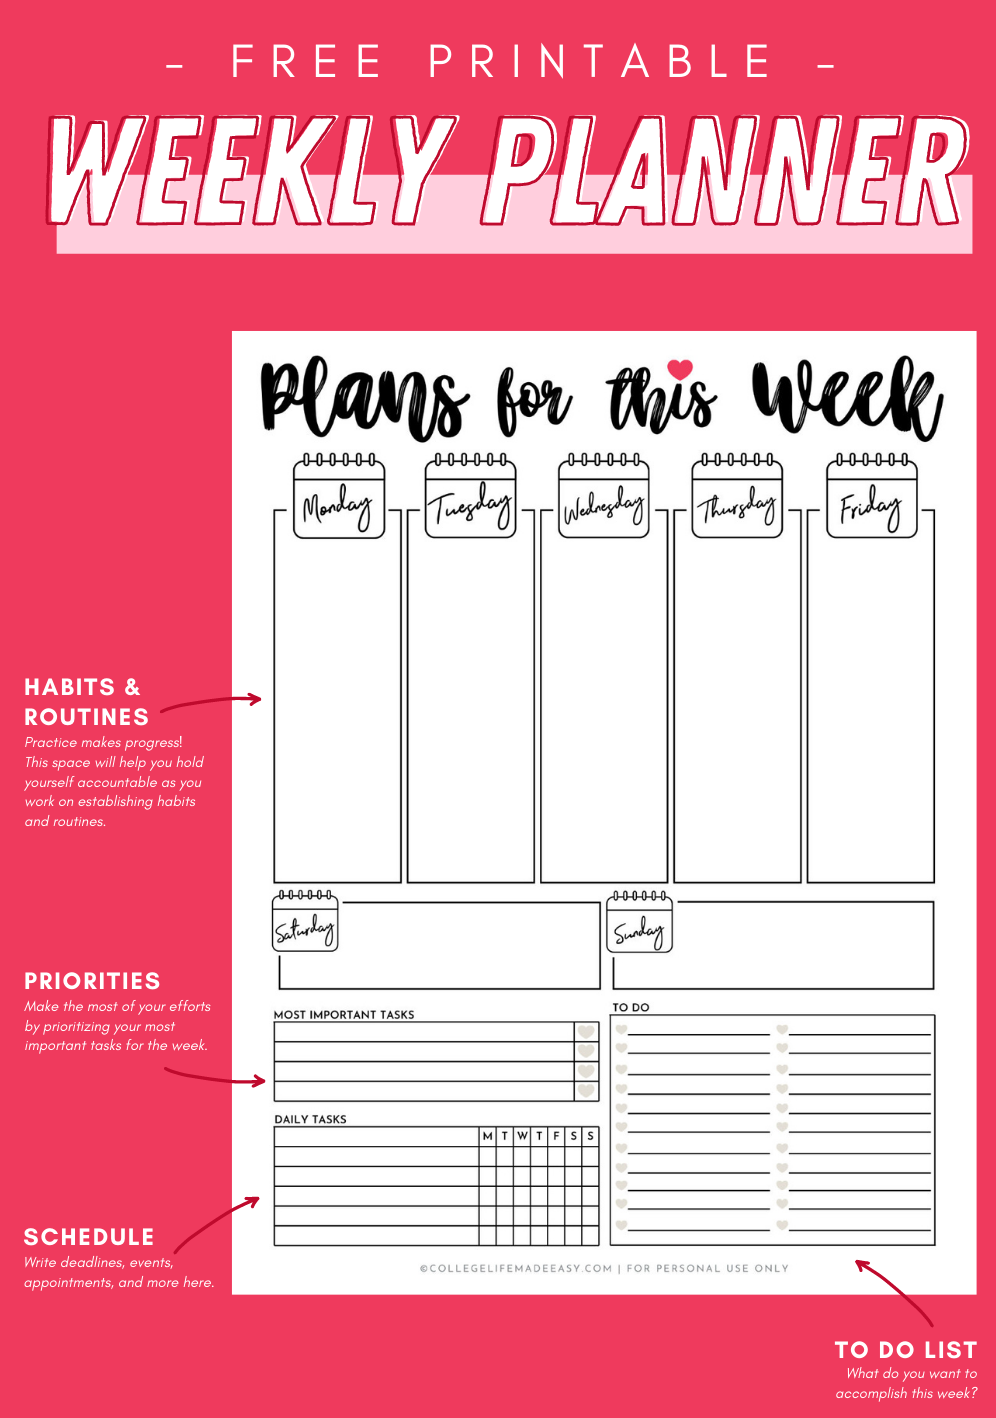 free cute printable weekly planner info graphic for saving this post to Pinterest